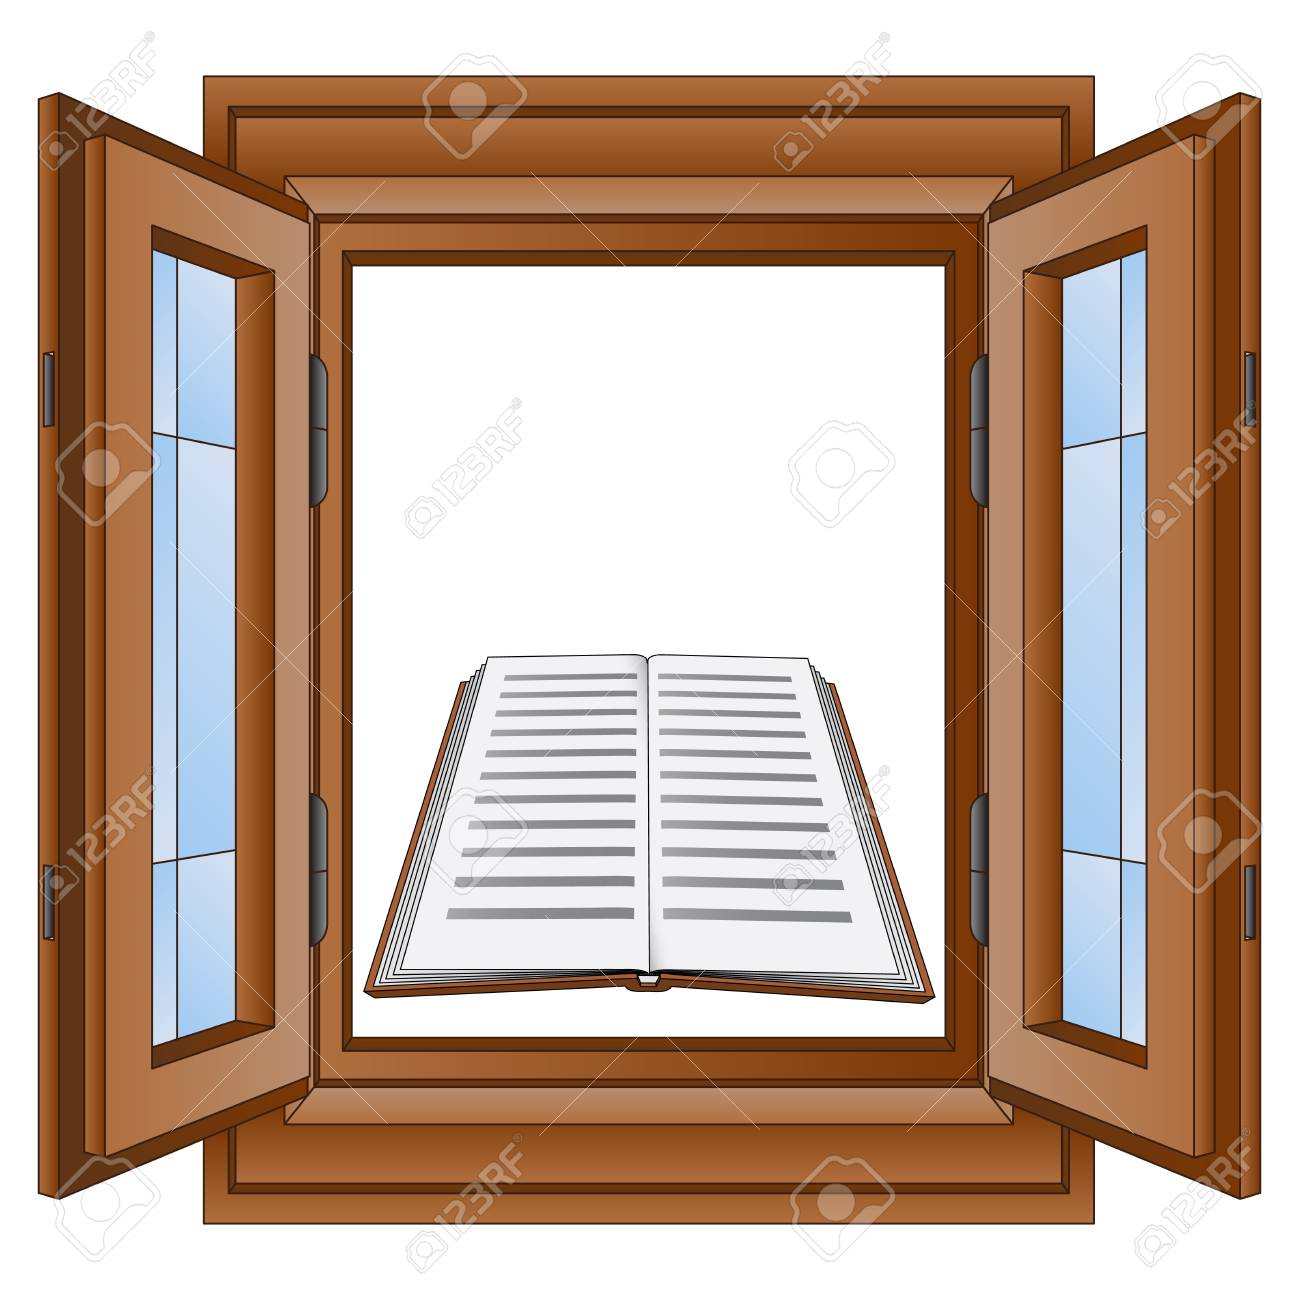 education book in window wooden frame vector illustration Stock Photo - 21227319